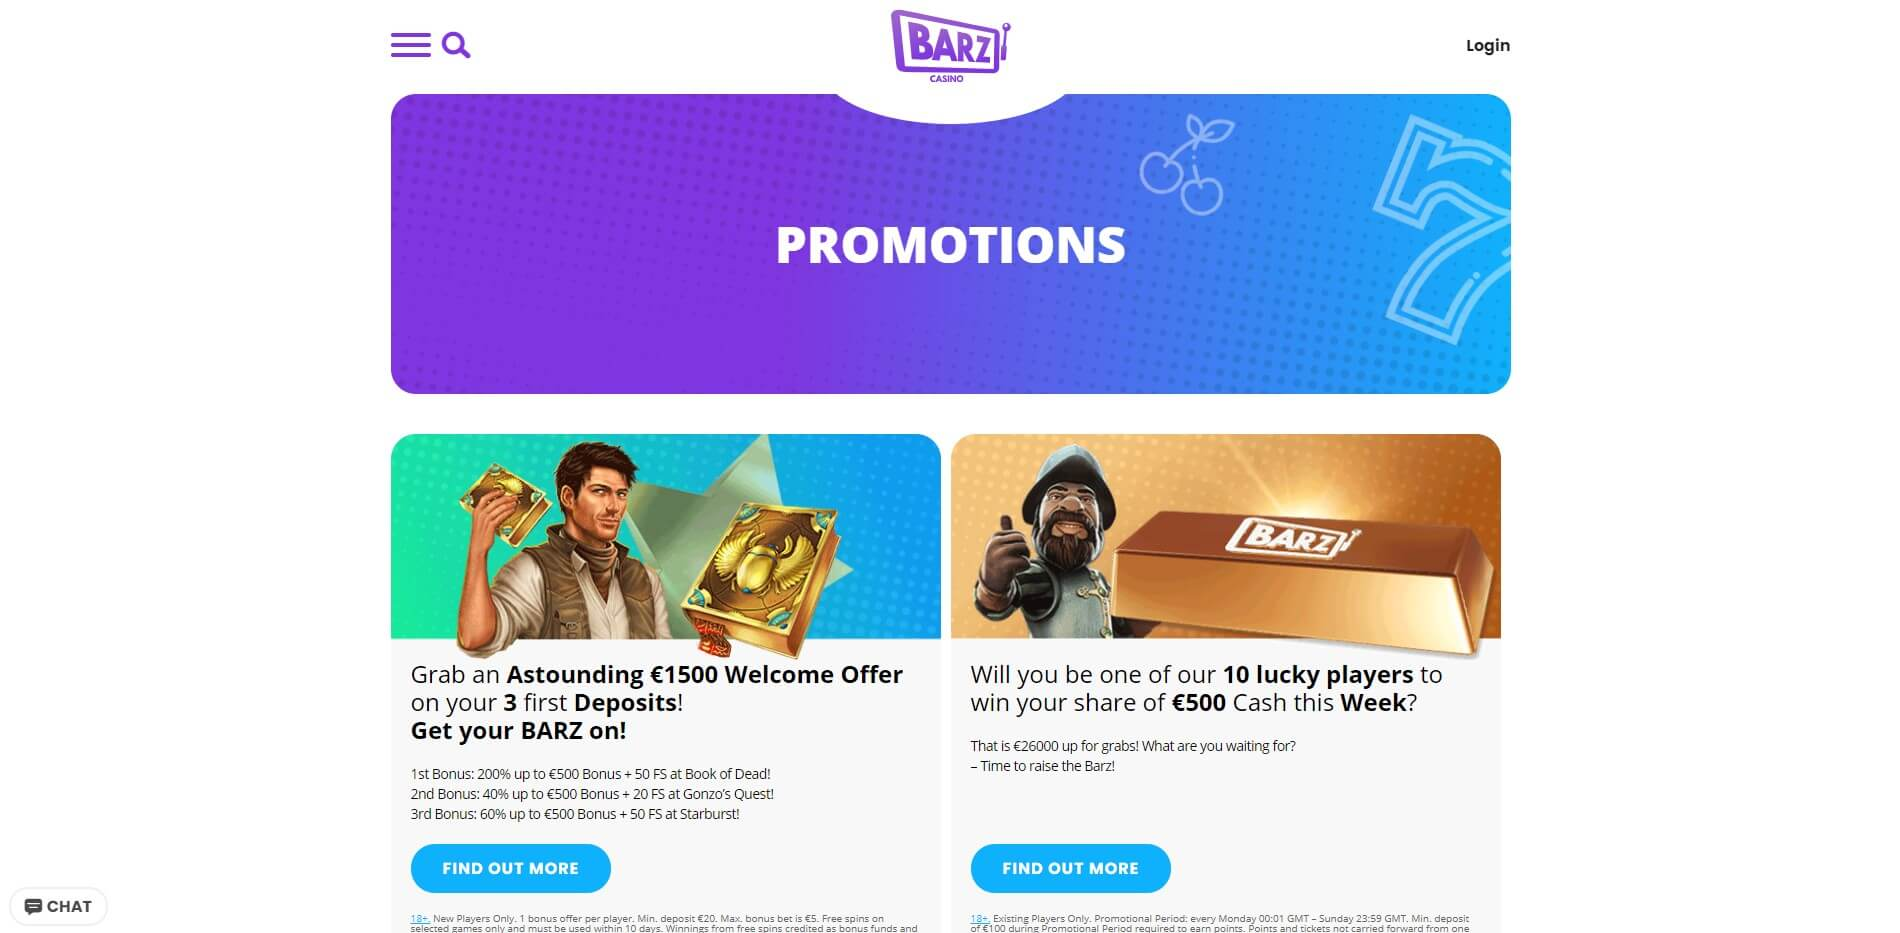 Promotions at Barz Casino